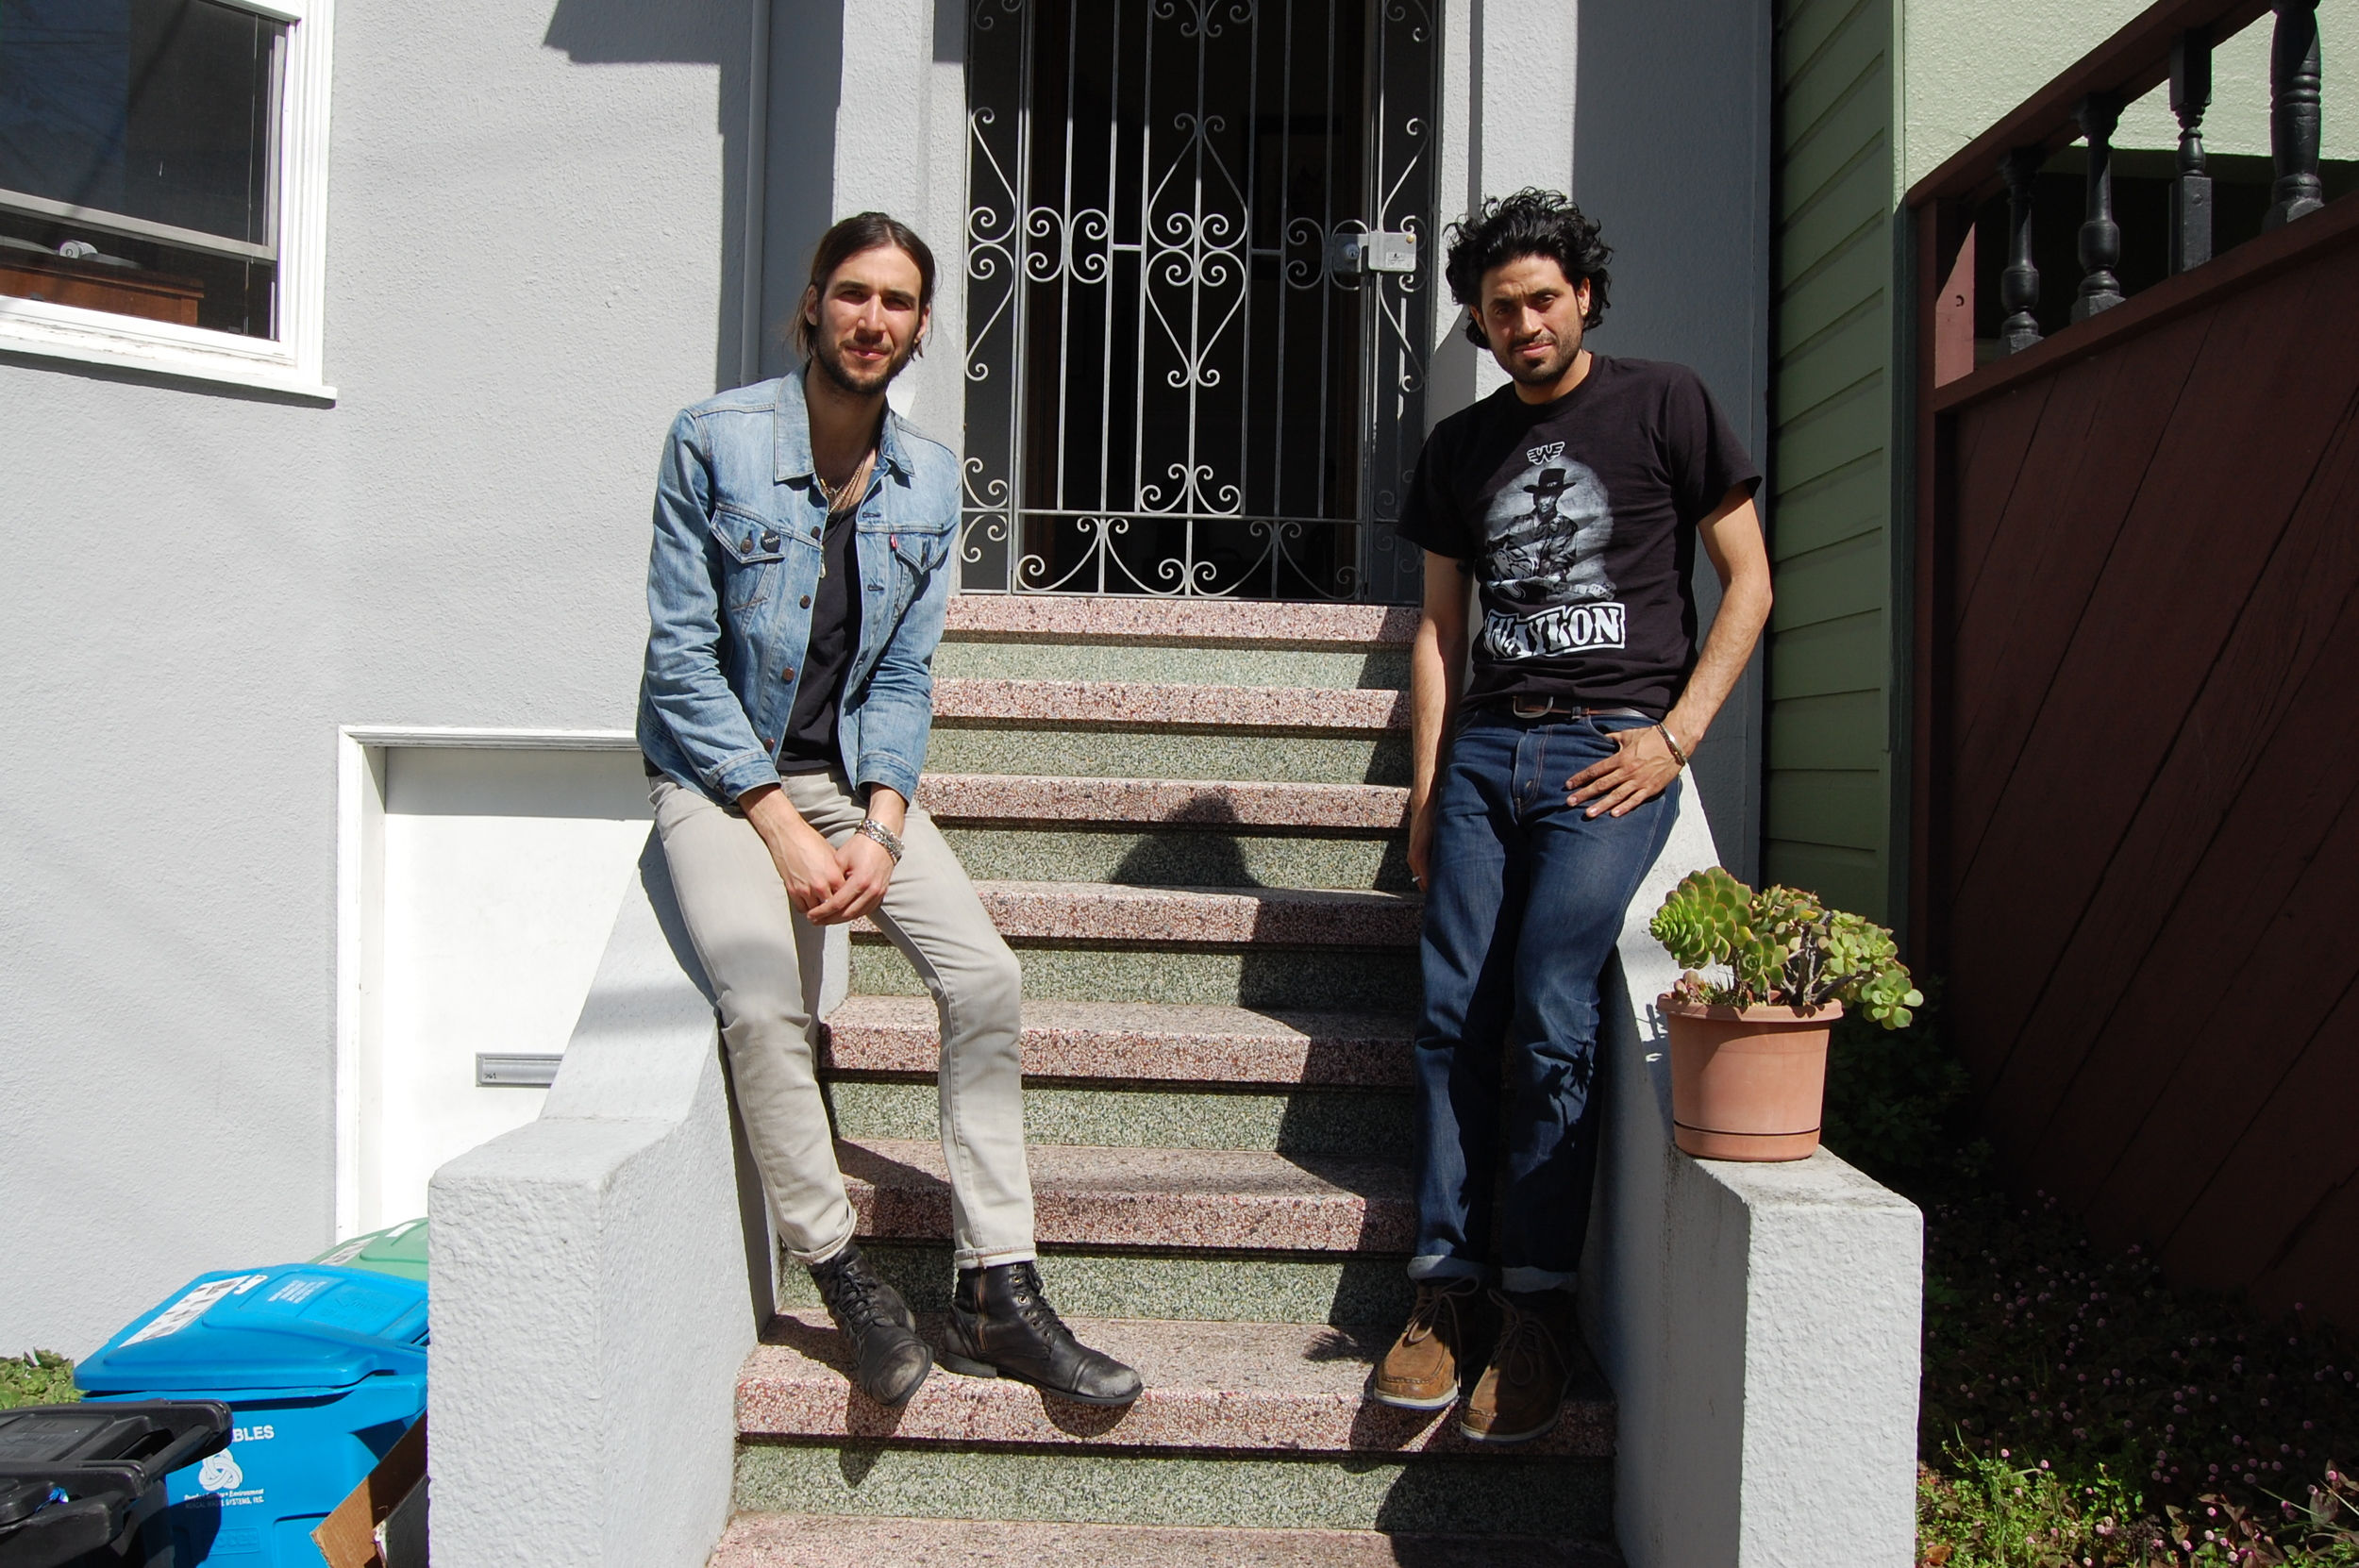 Aaron and Octavio of The Soft White Sixties